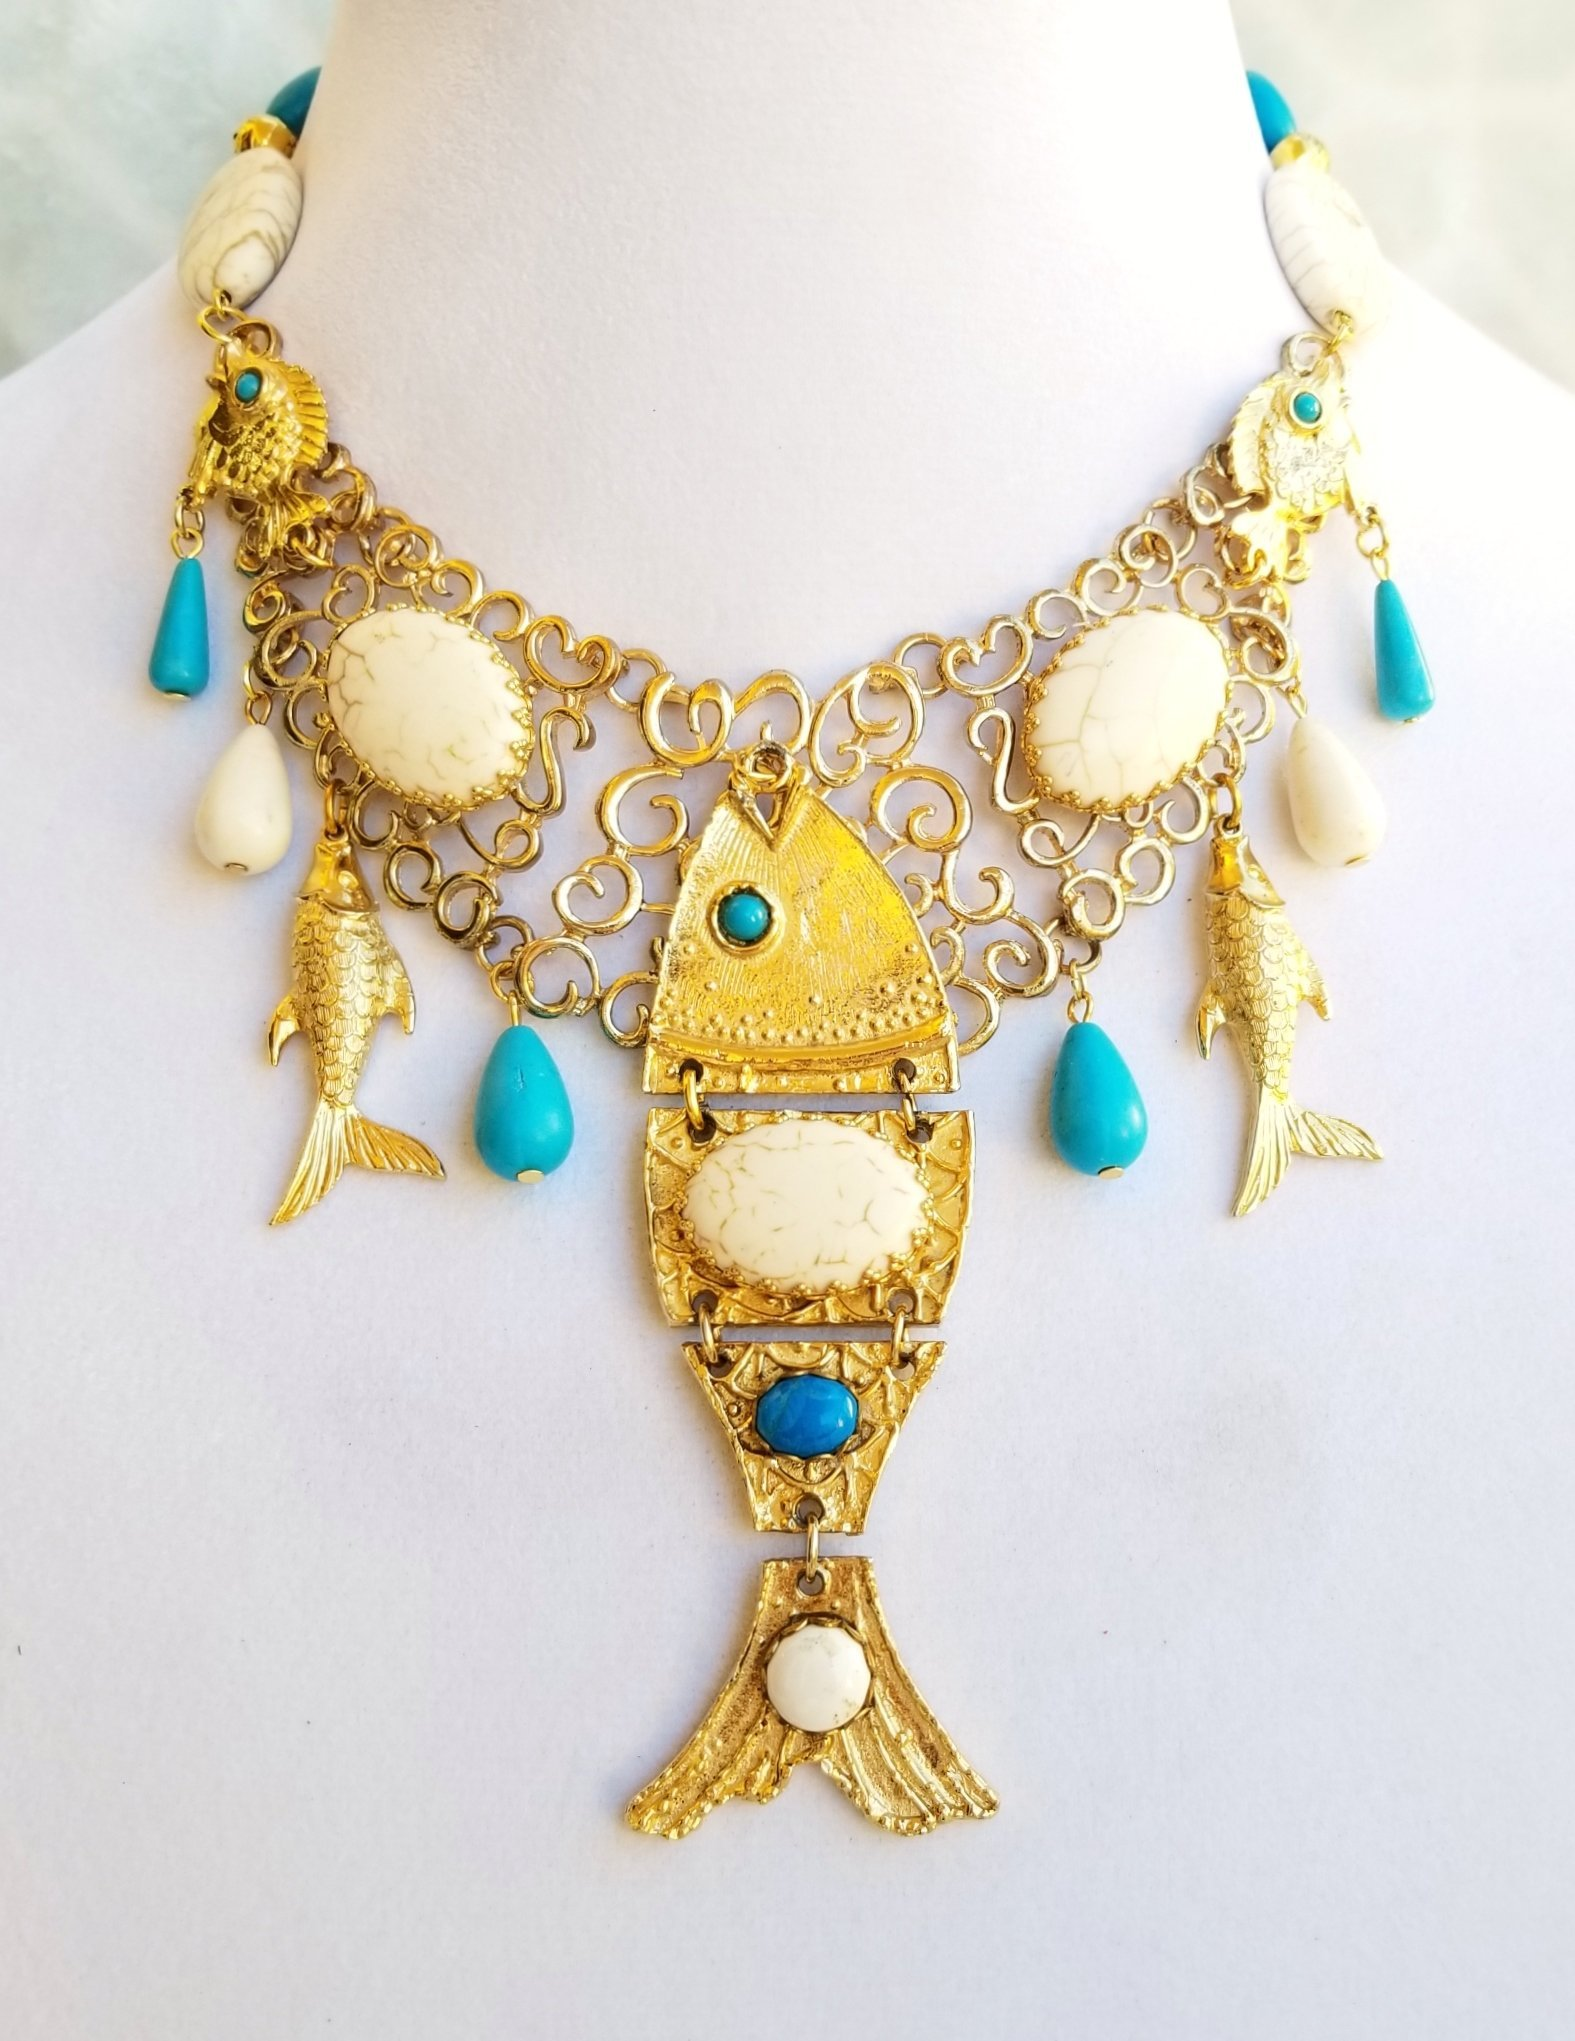 Turquoise Gold Vintage Fish Bib Necklace Earrings Bracelet One of a Kind